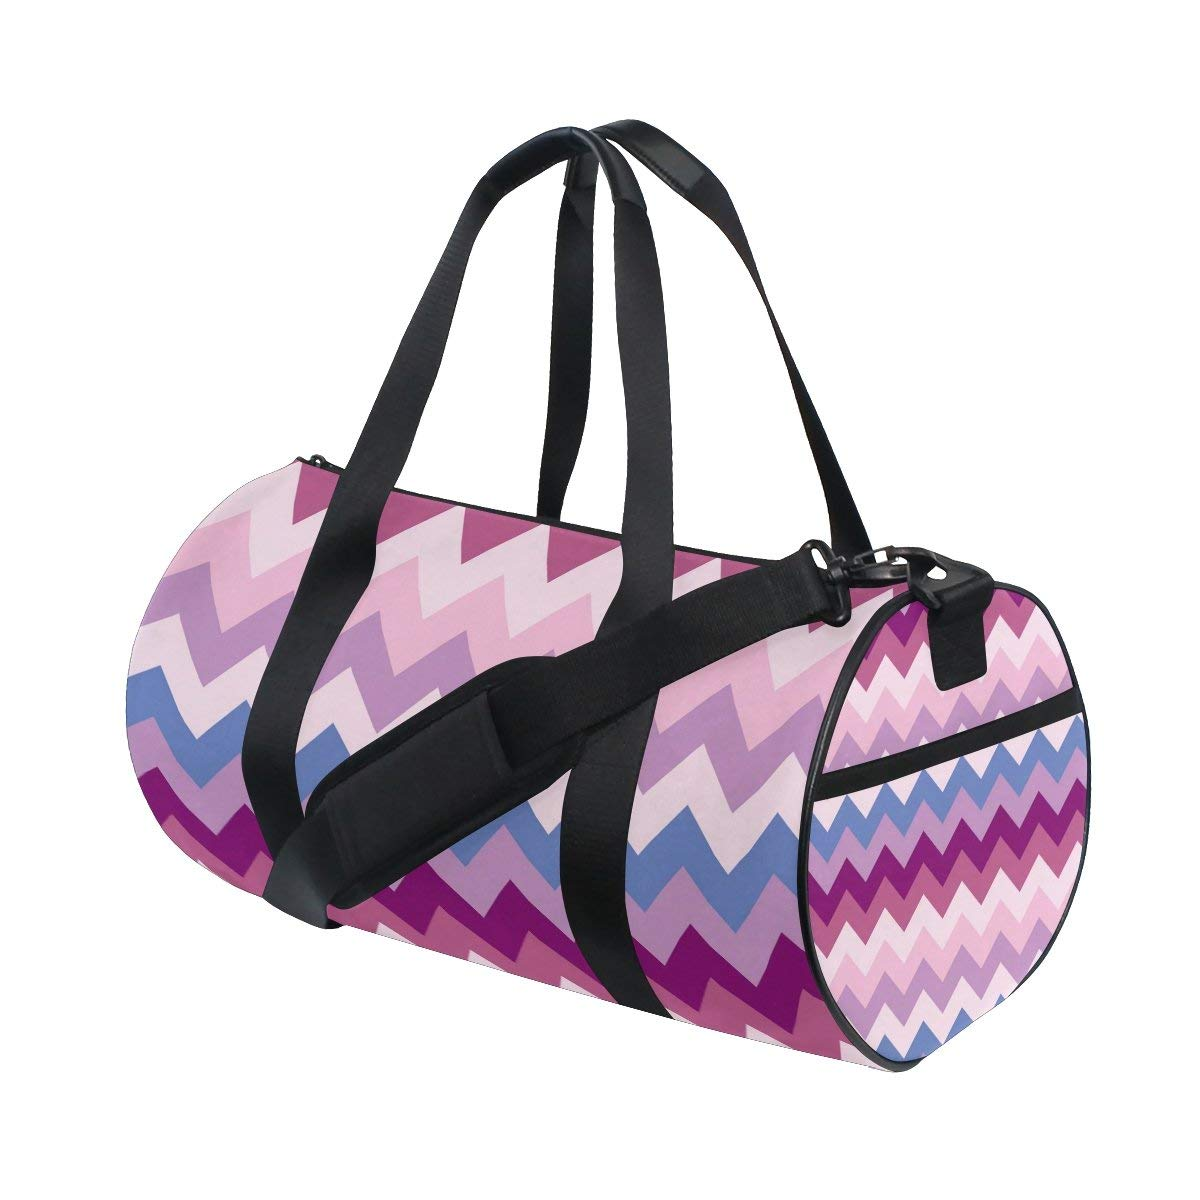 86f6e902f044 Get Quotations · ALIREA Chevron Duffle bag Shoulder Handy Sports Gym Bags  for Men and Women